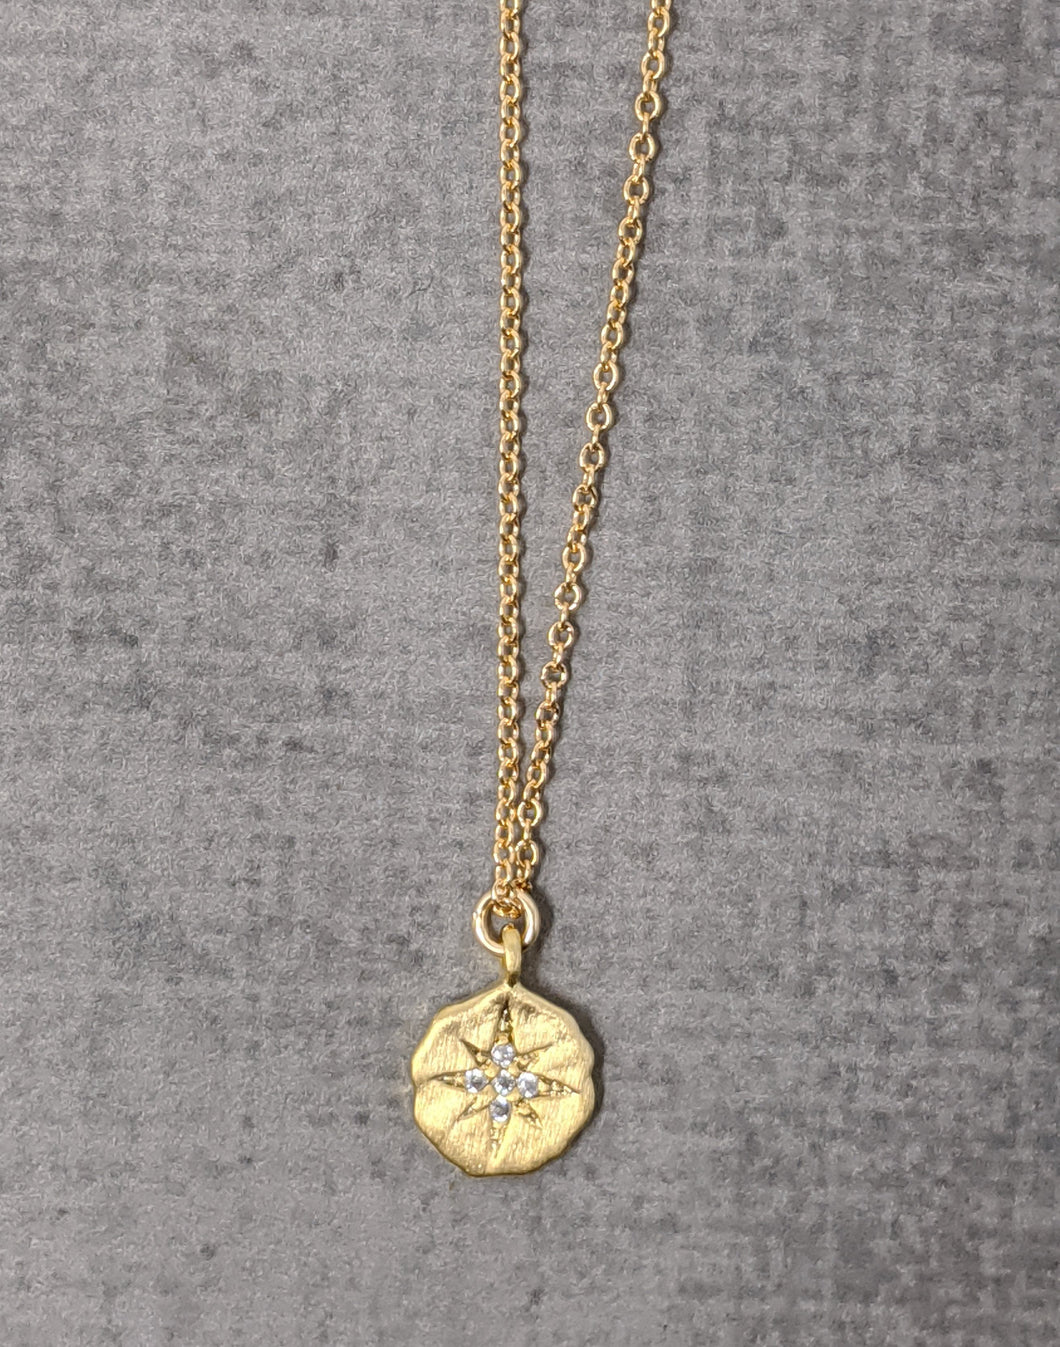 Yellow gold starburst necklace with CZ